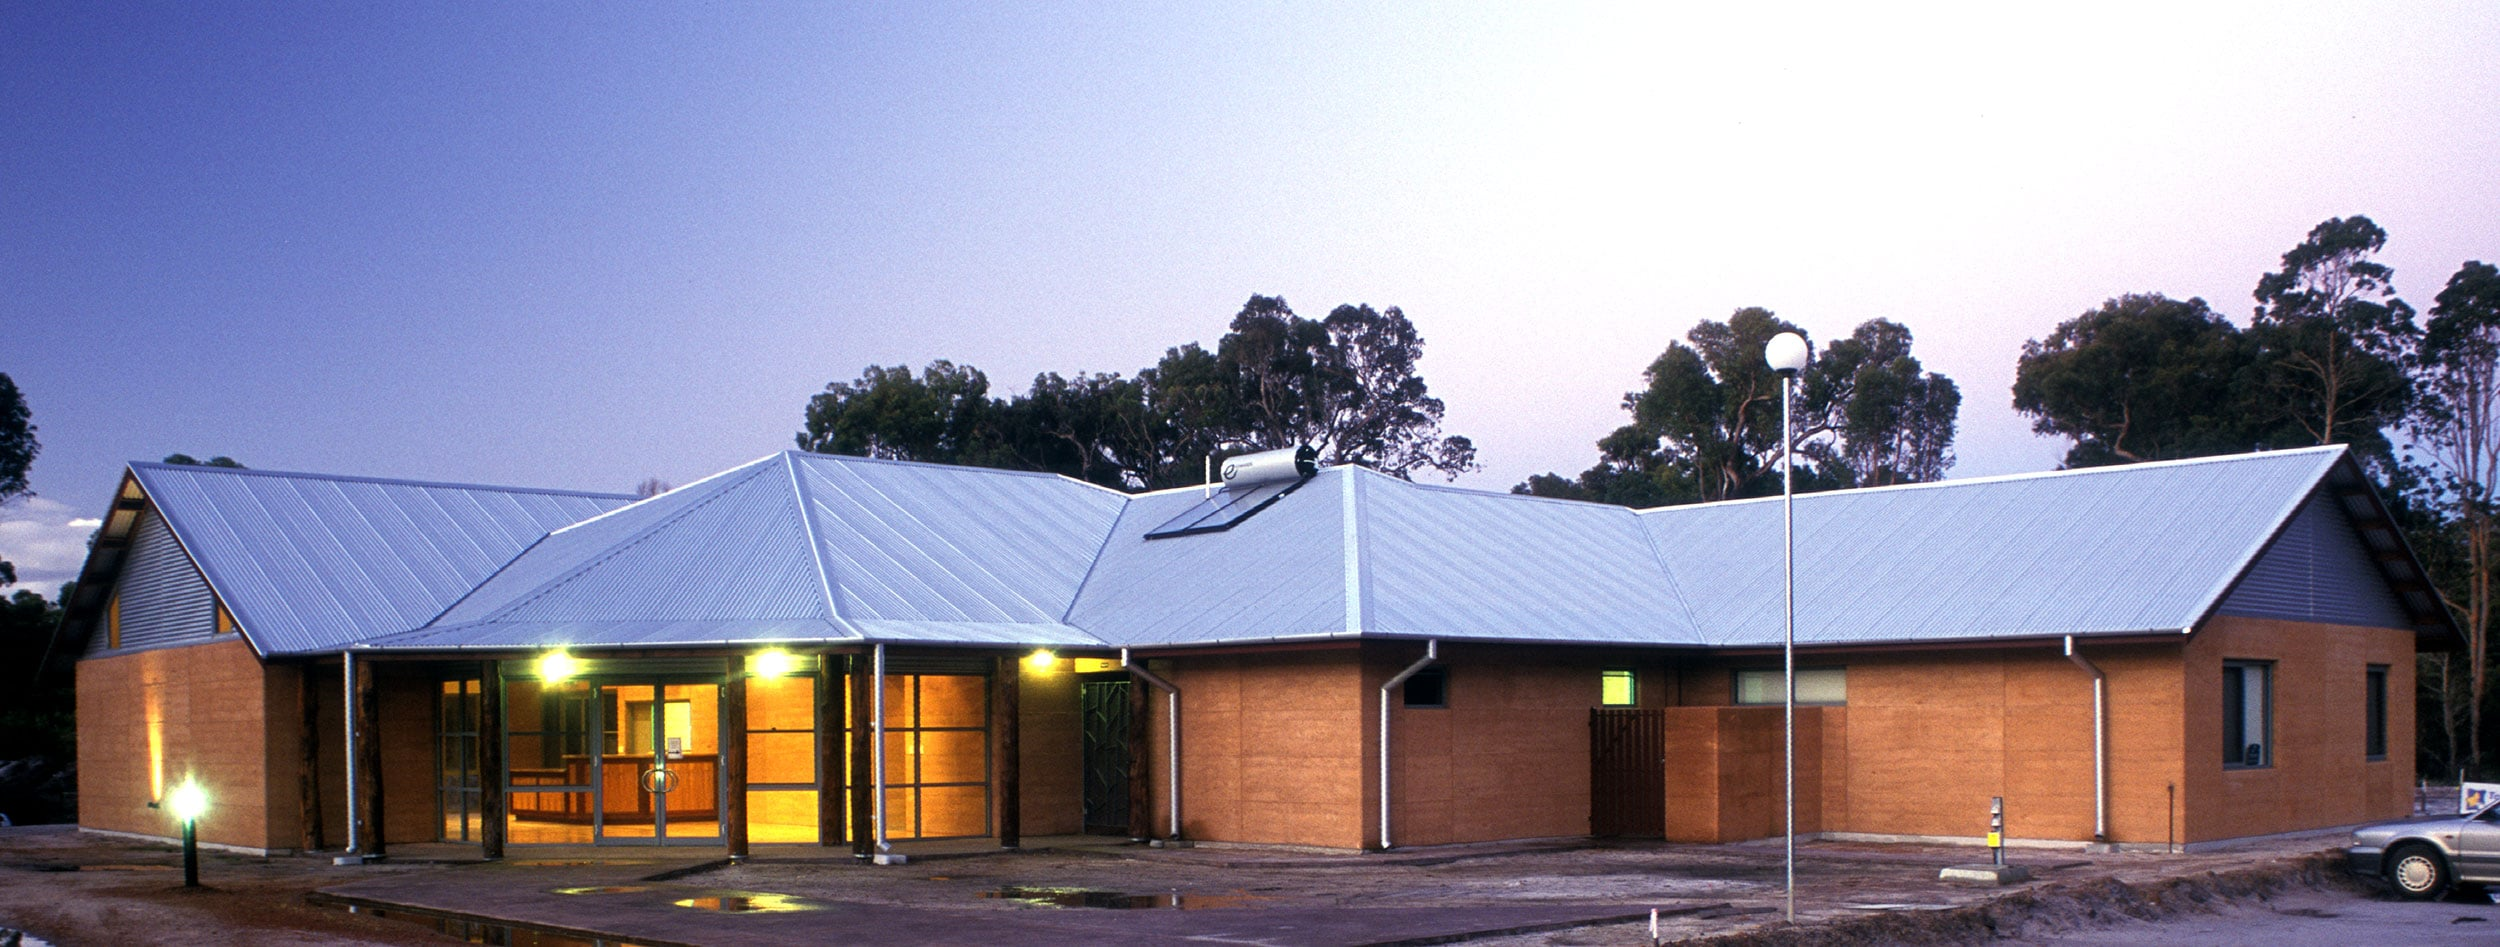 Cultural Centre Building in Northcliffe